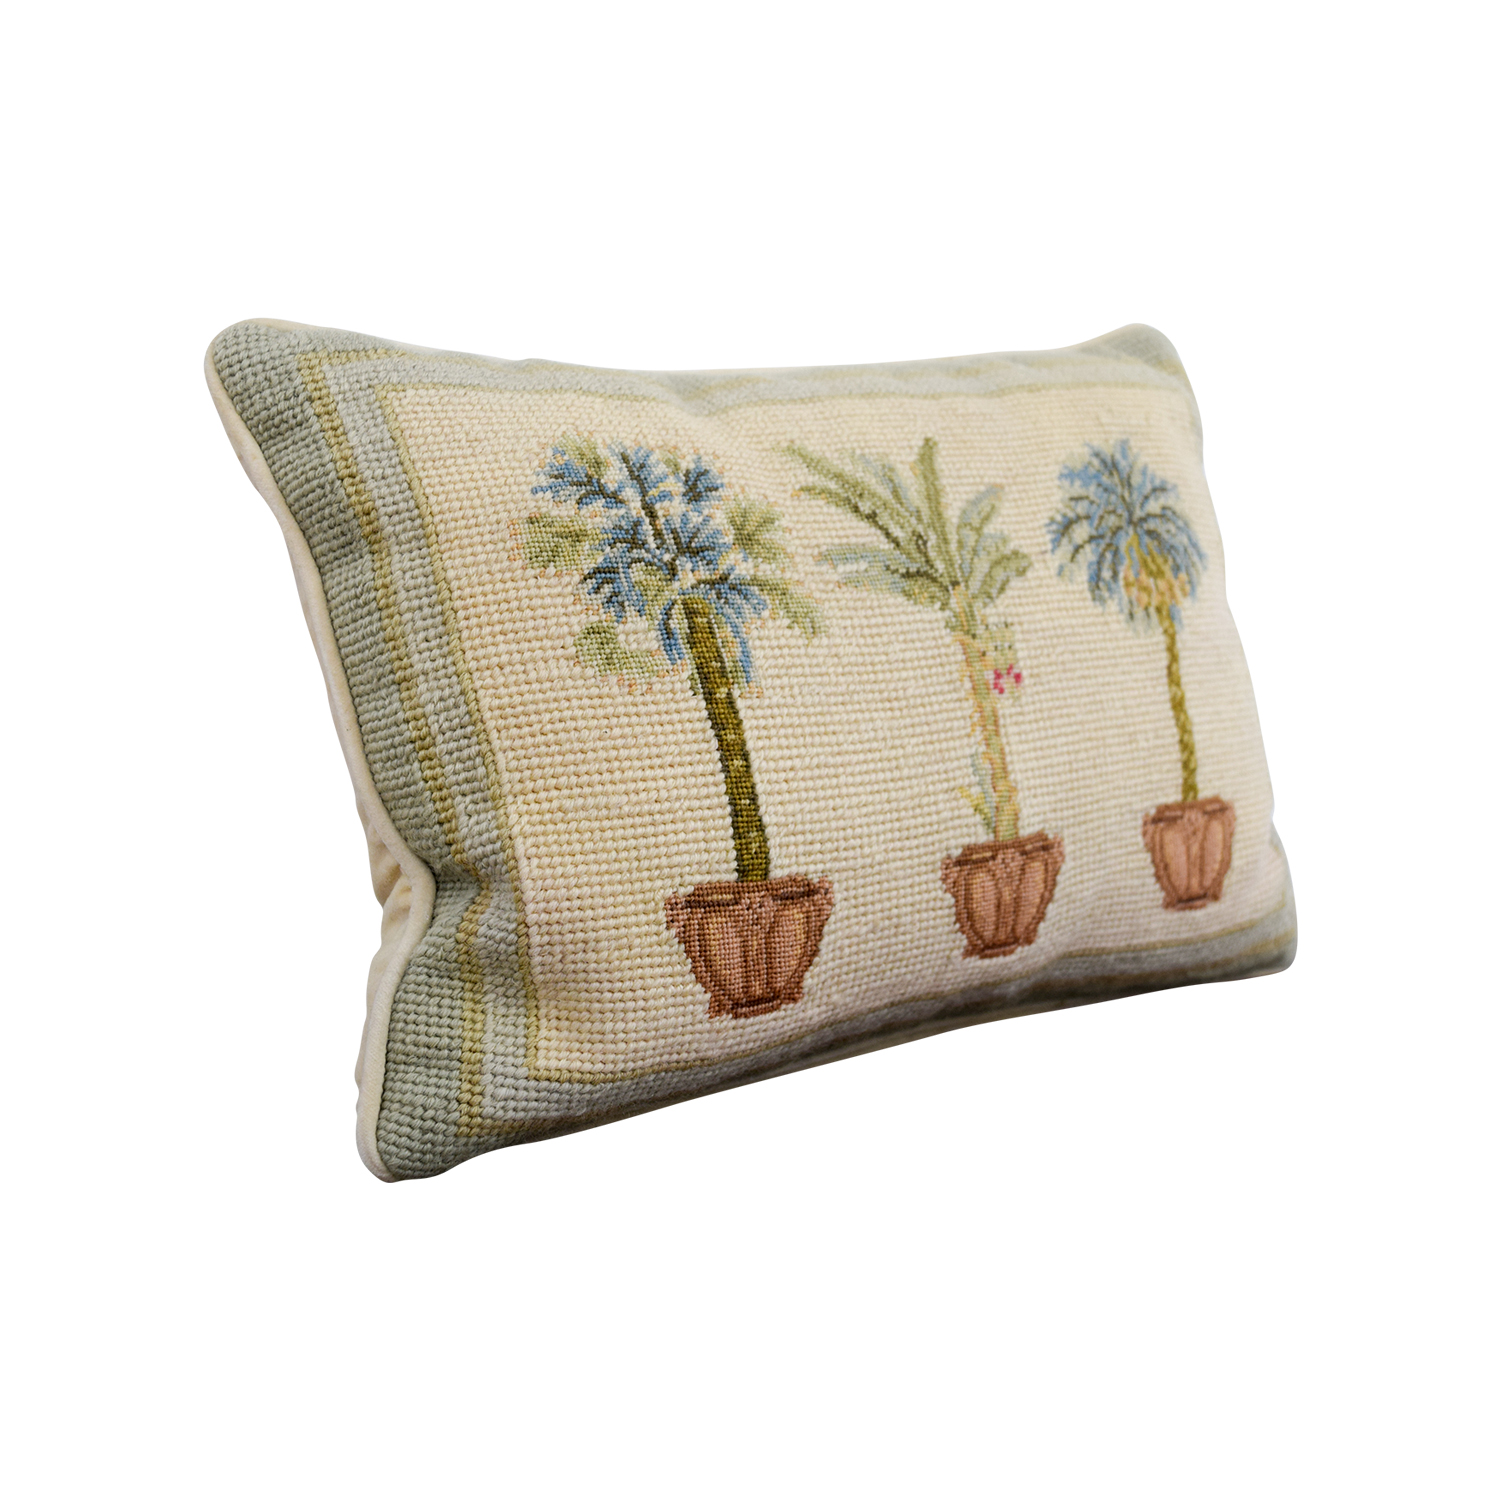 trust product chairish pillows in pillow needlepoint mod we